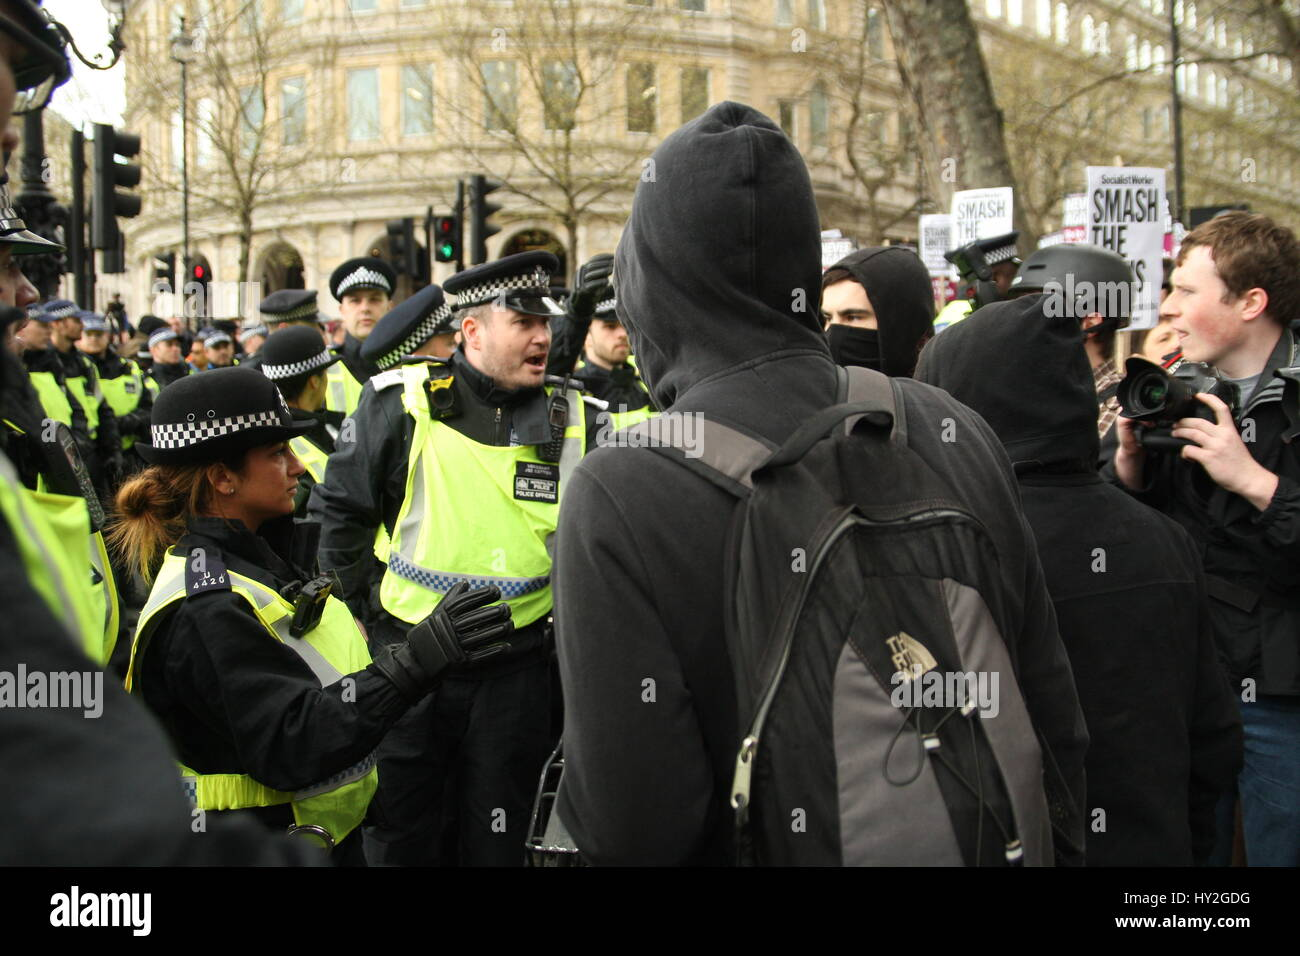 London, UK. April 1st, 2017. Police confront anti-racist protesters. Far right groups Britain First and the English - Stock Image